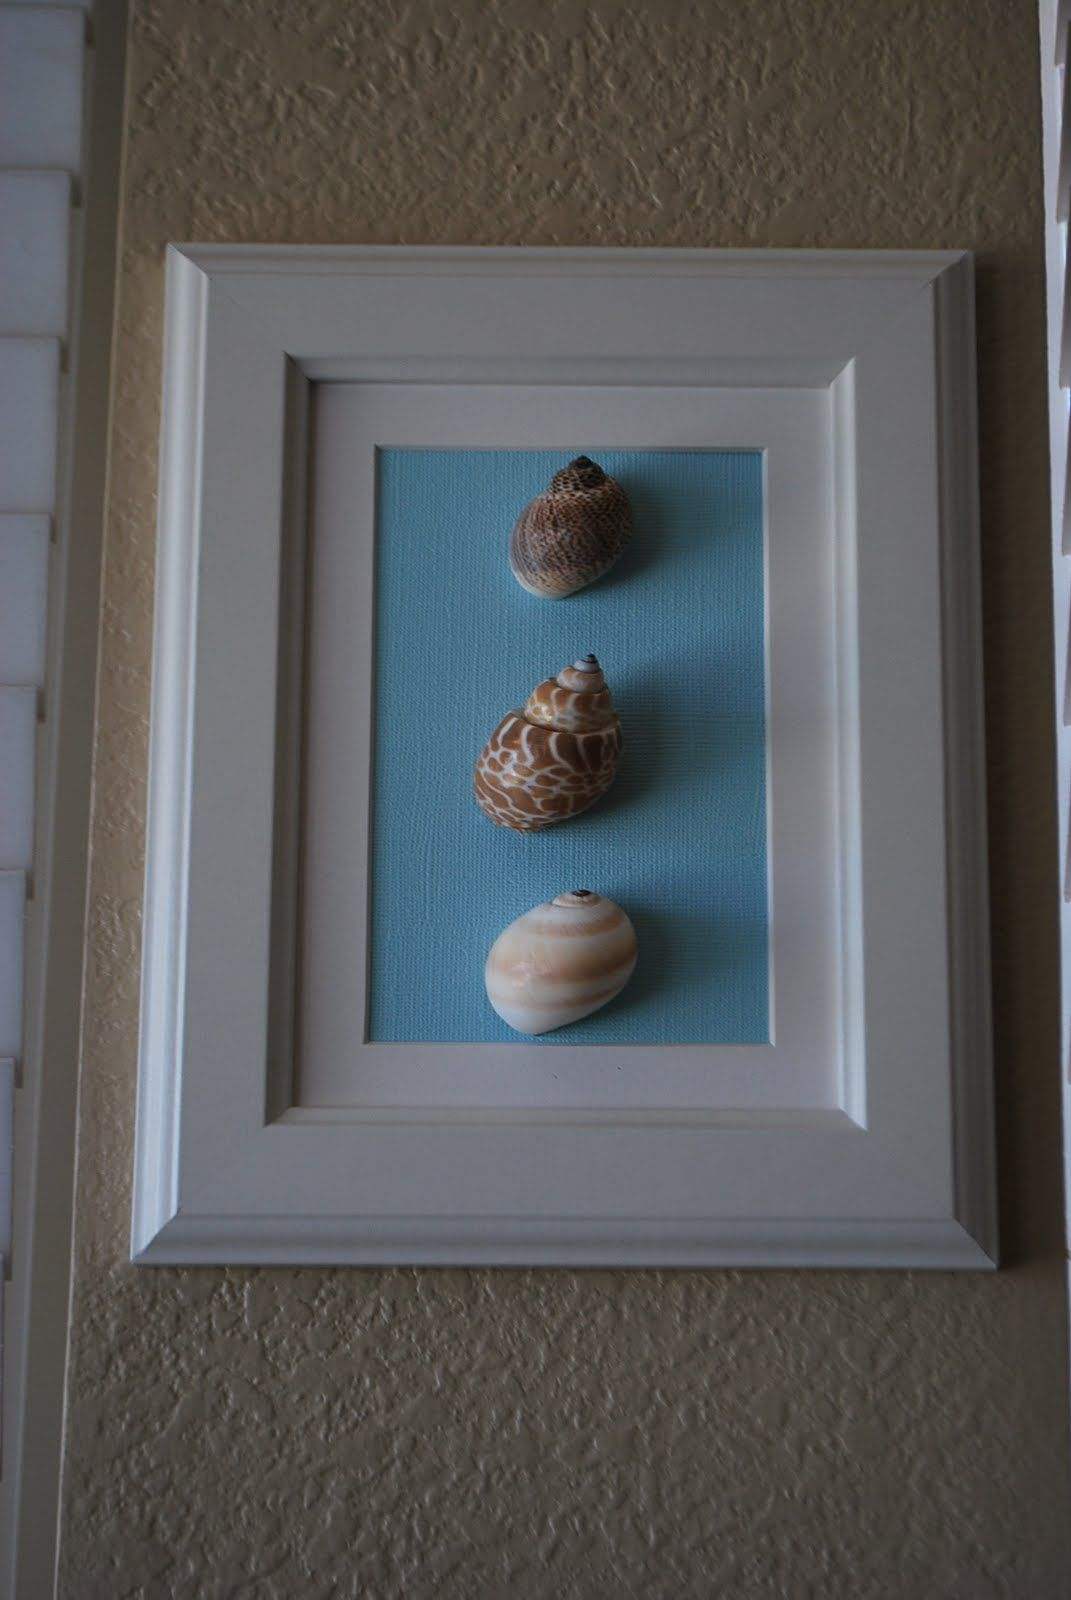 Blukatkraft Diy Quick Easy Wall Art For Bathroom: Sea Shell Crafts {bathroom W/ Costa Rica Shells}